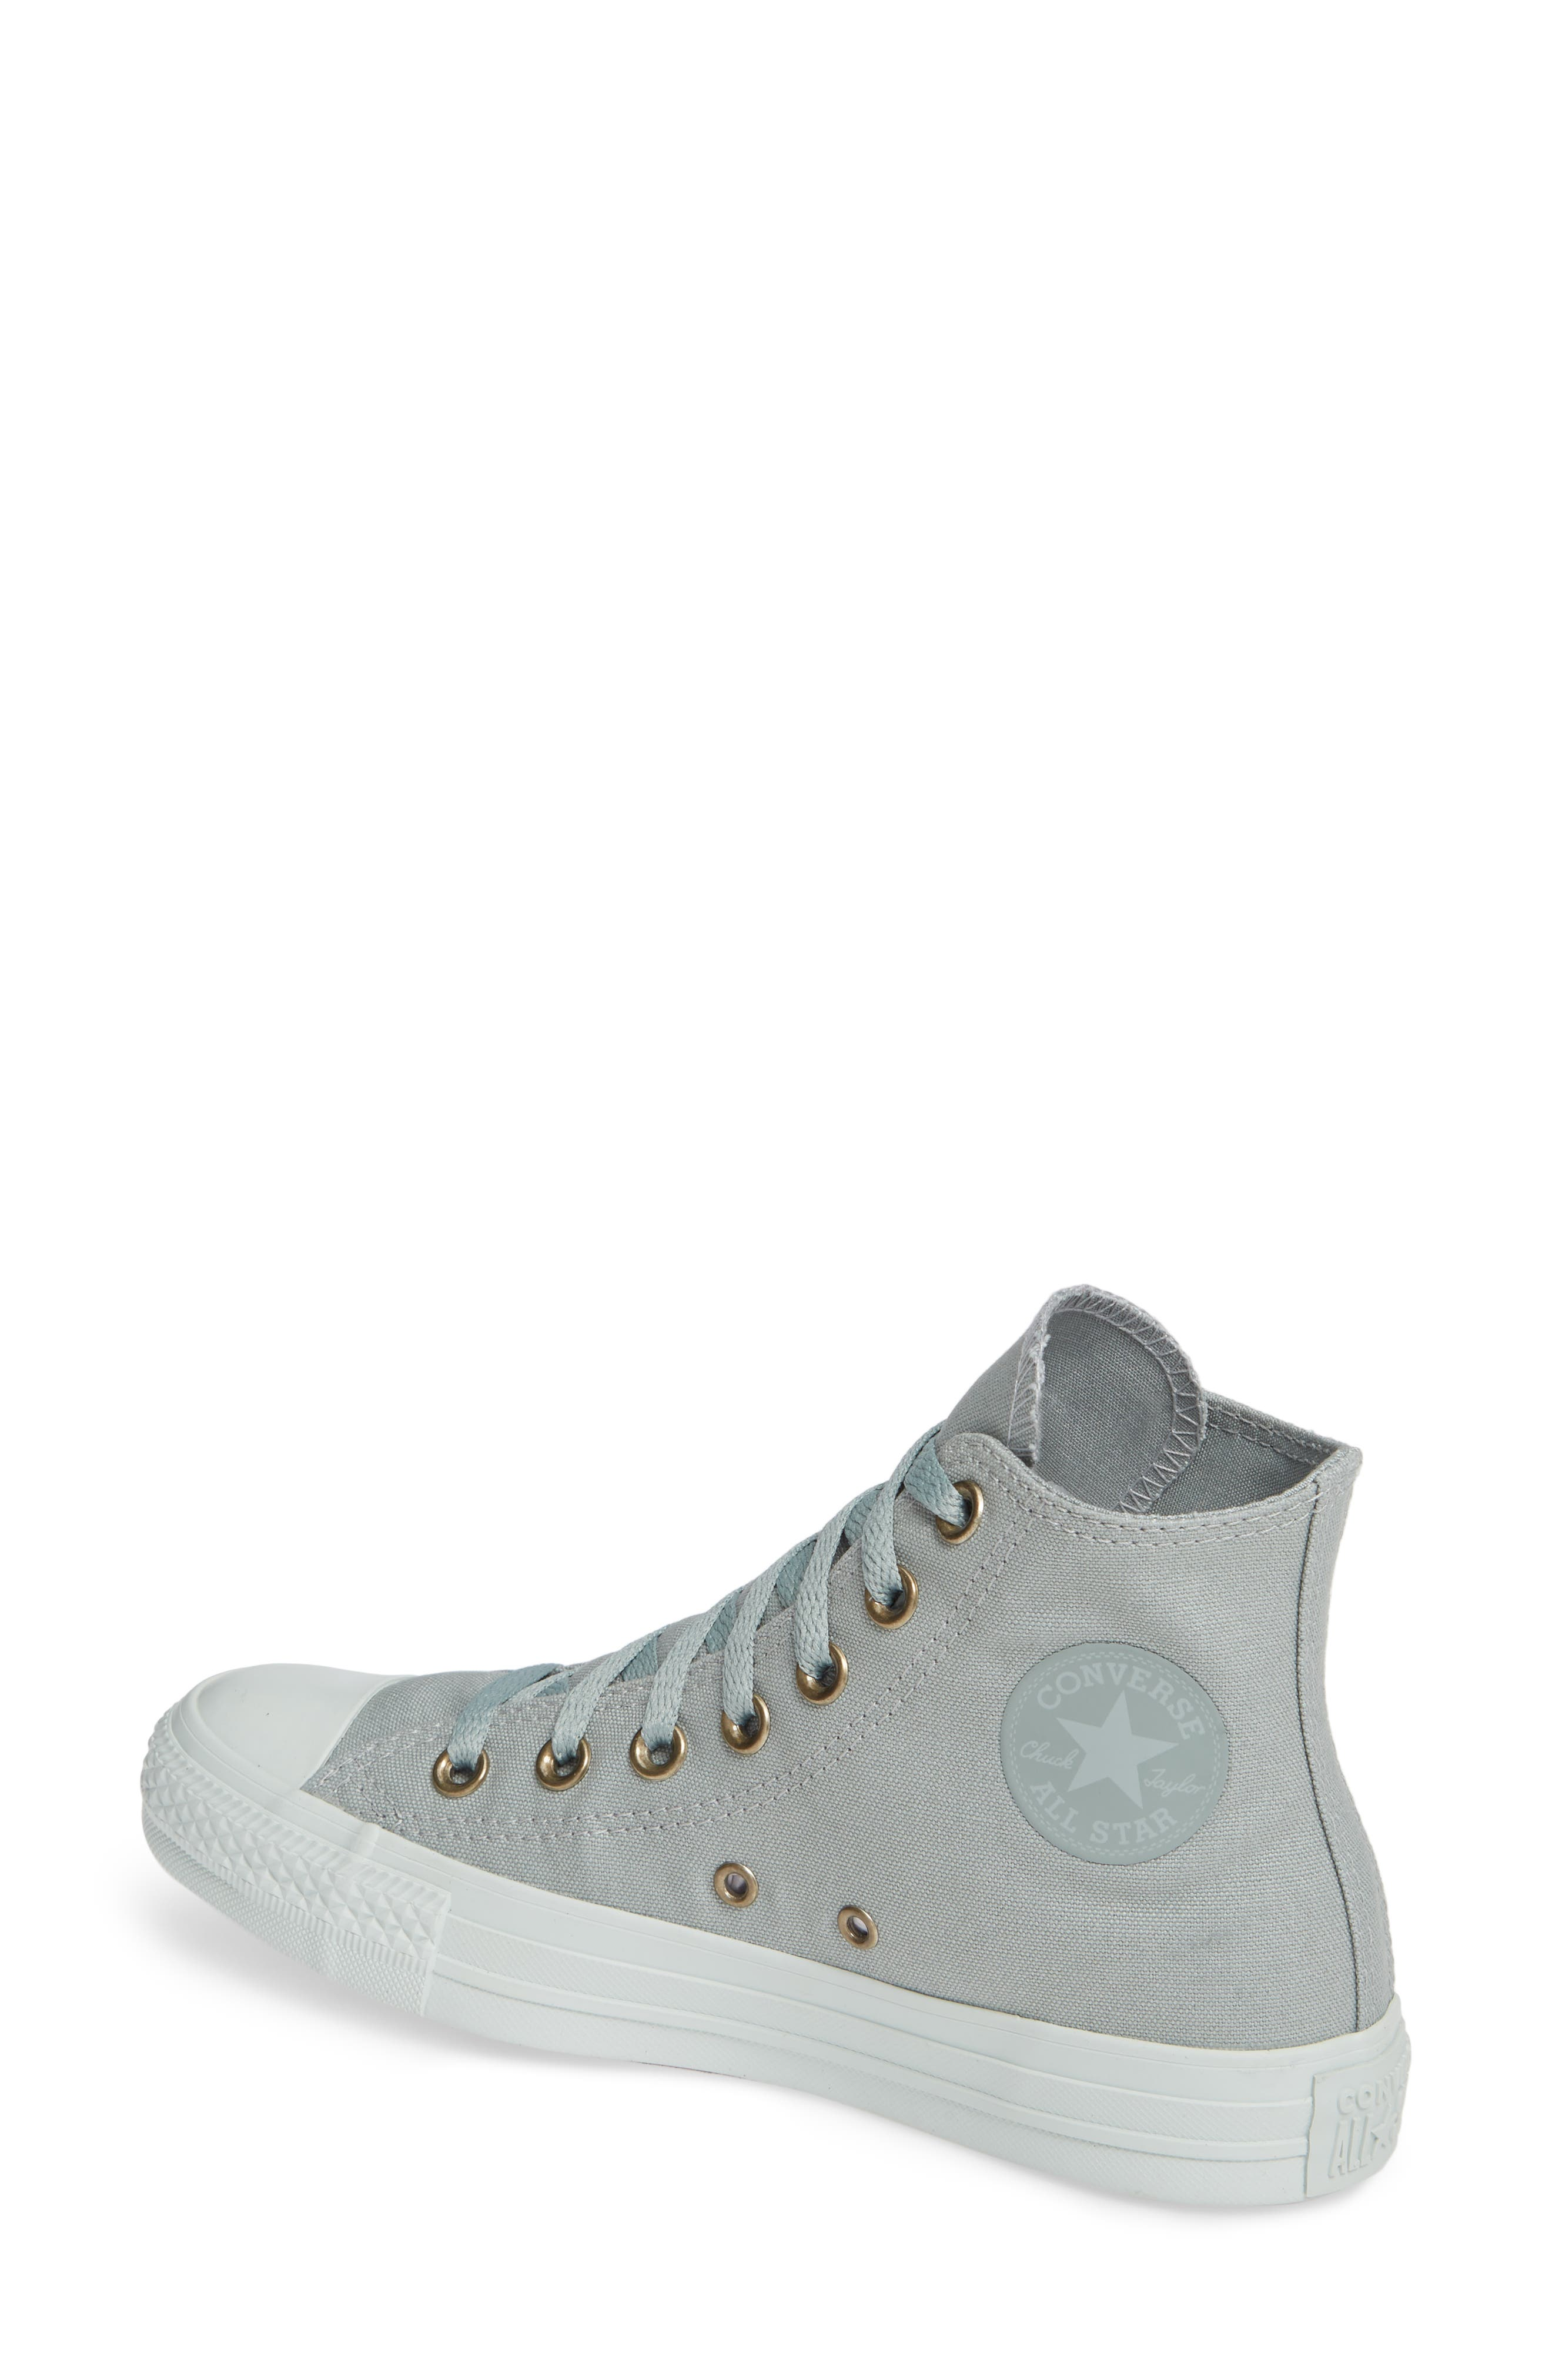 Chuck Taylor<sup>®</sup> All Star<sup>®</sup> Botanical High Top Sneaker,                             Alternate thumbnail 2, color,                             MICA GREEN